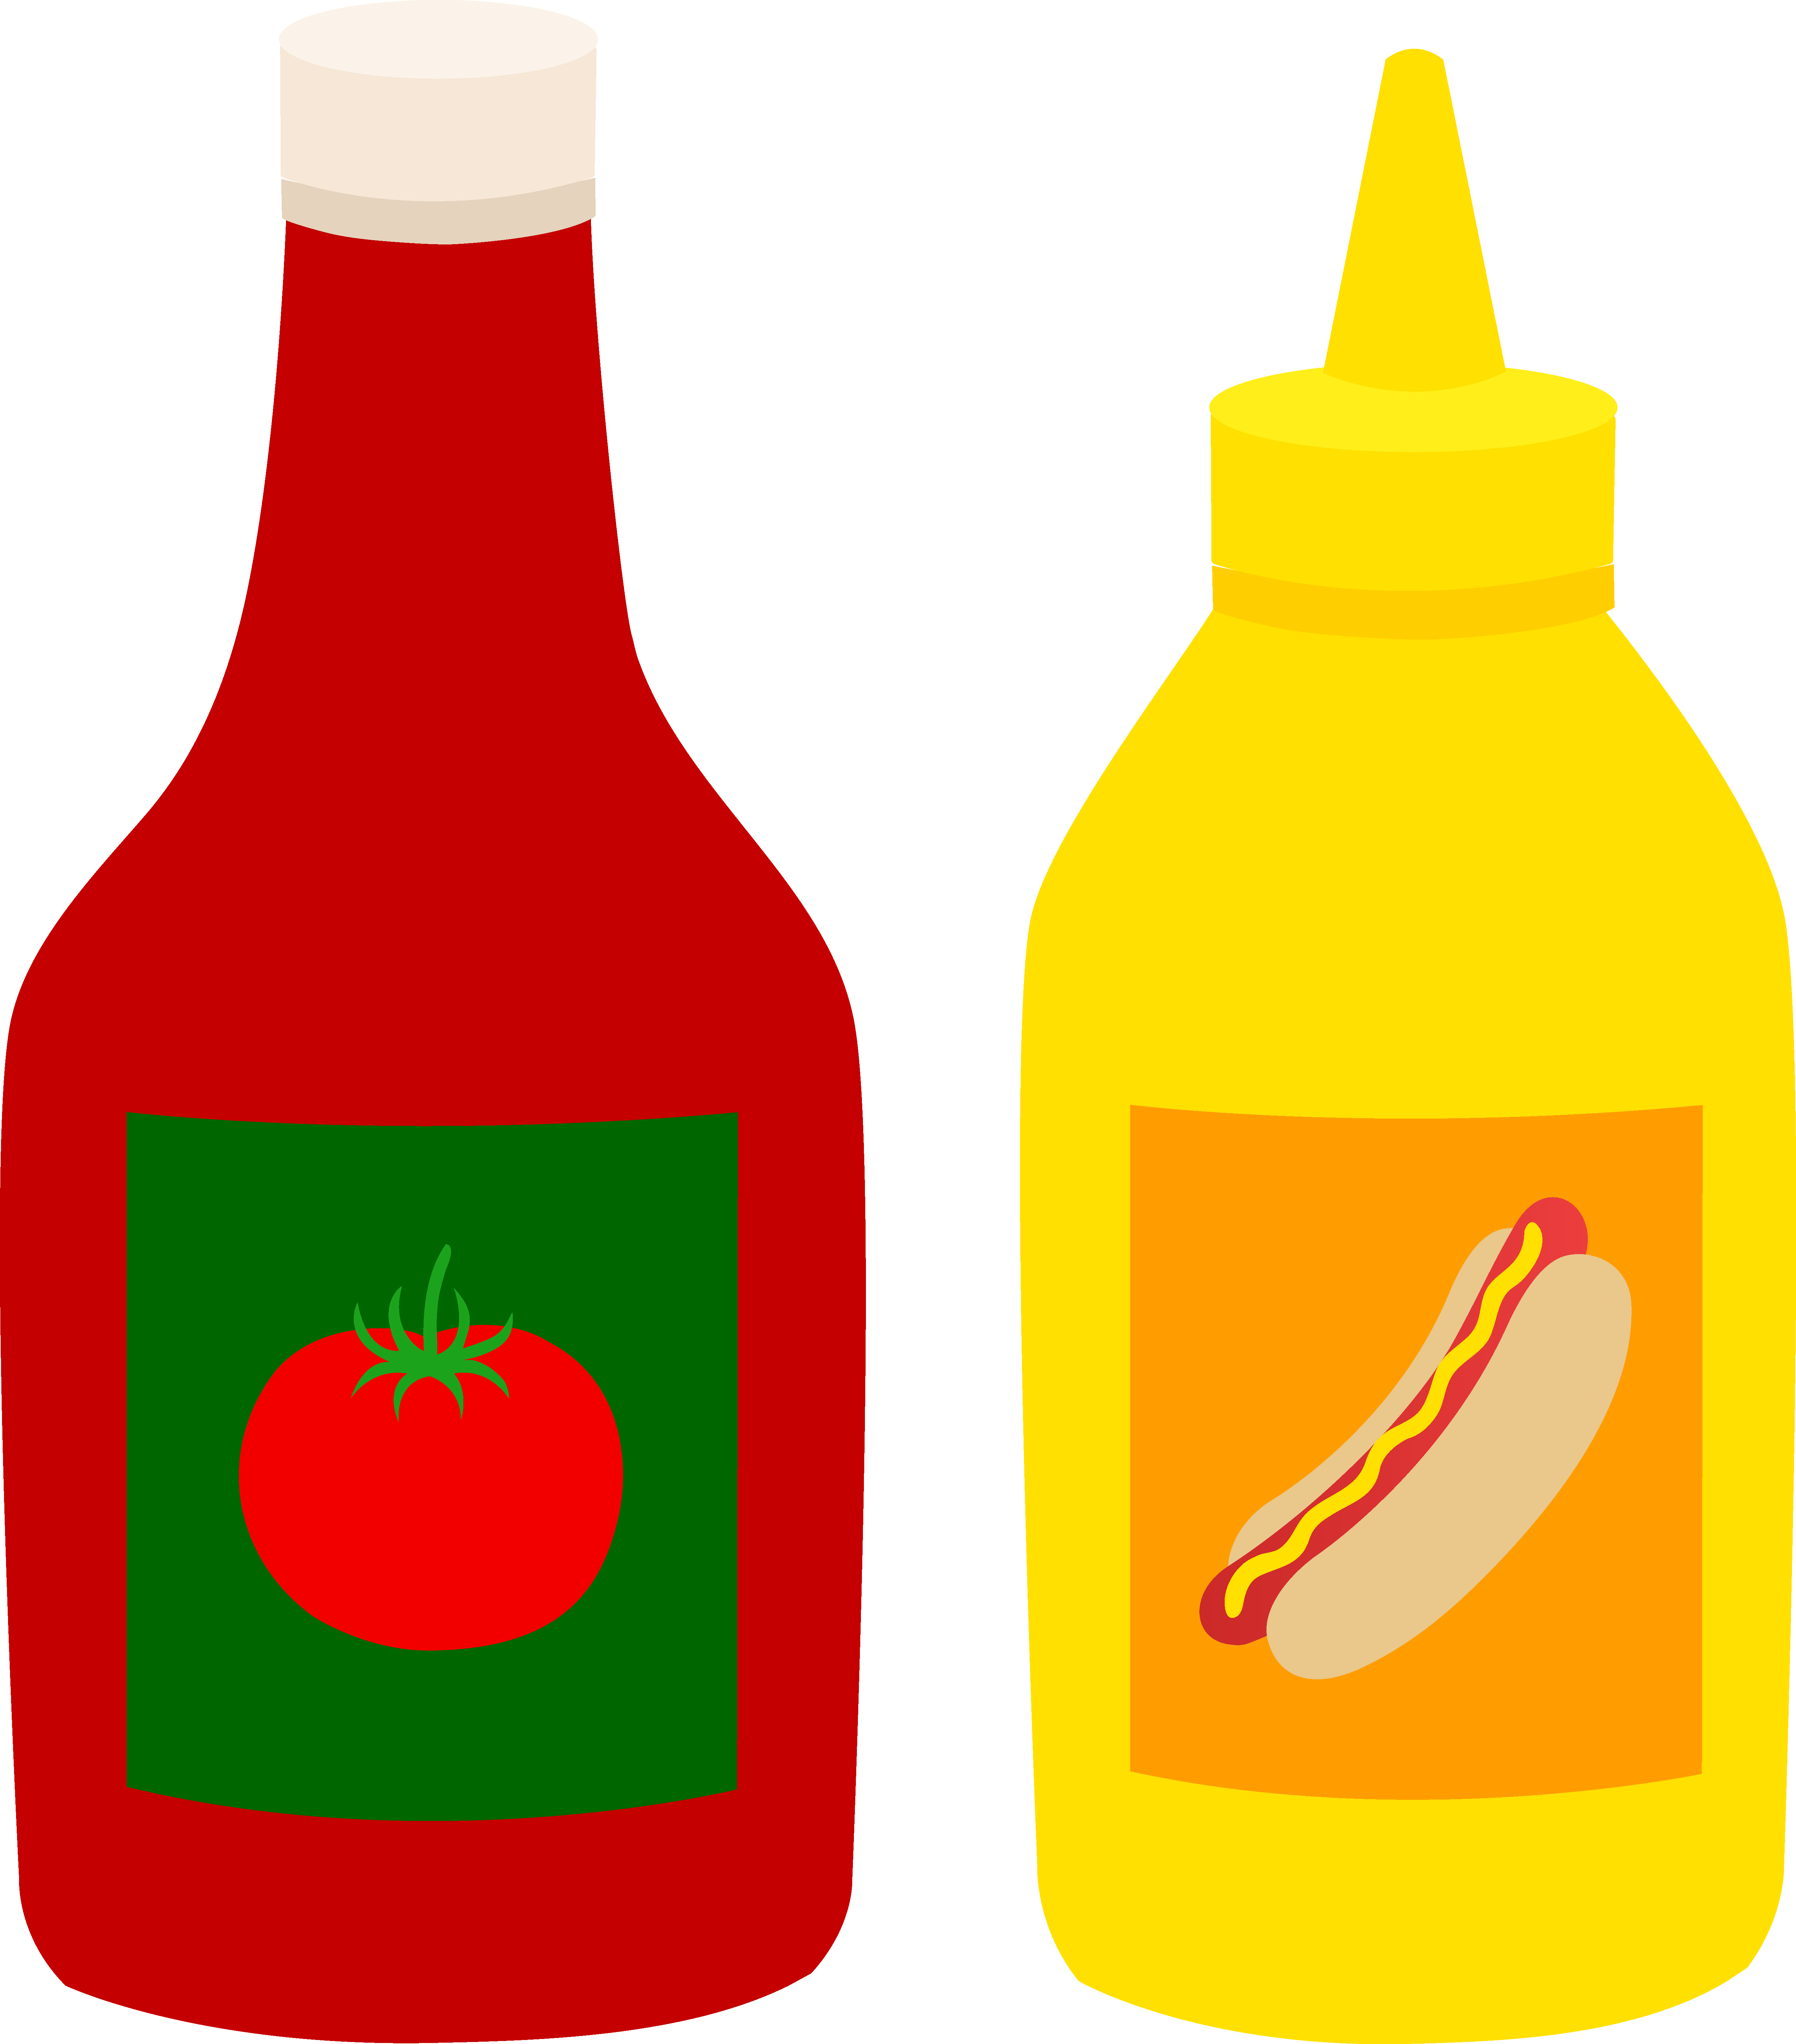 Ketchup clipart condiment. Bottles of and mustard